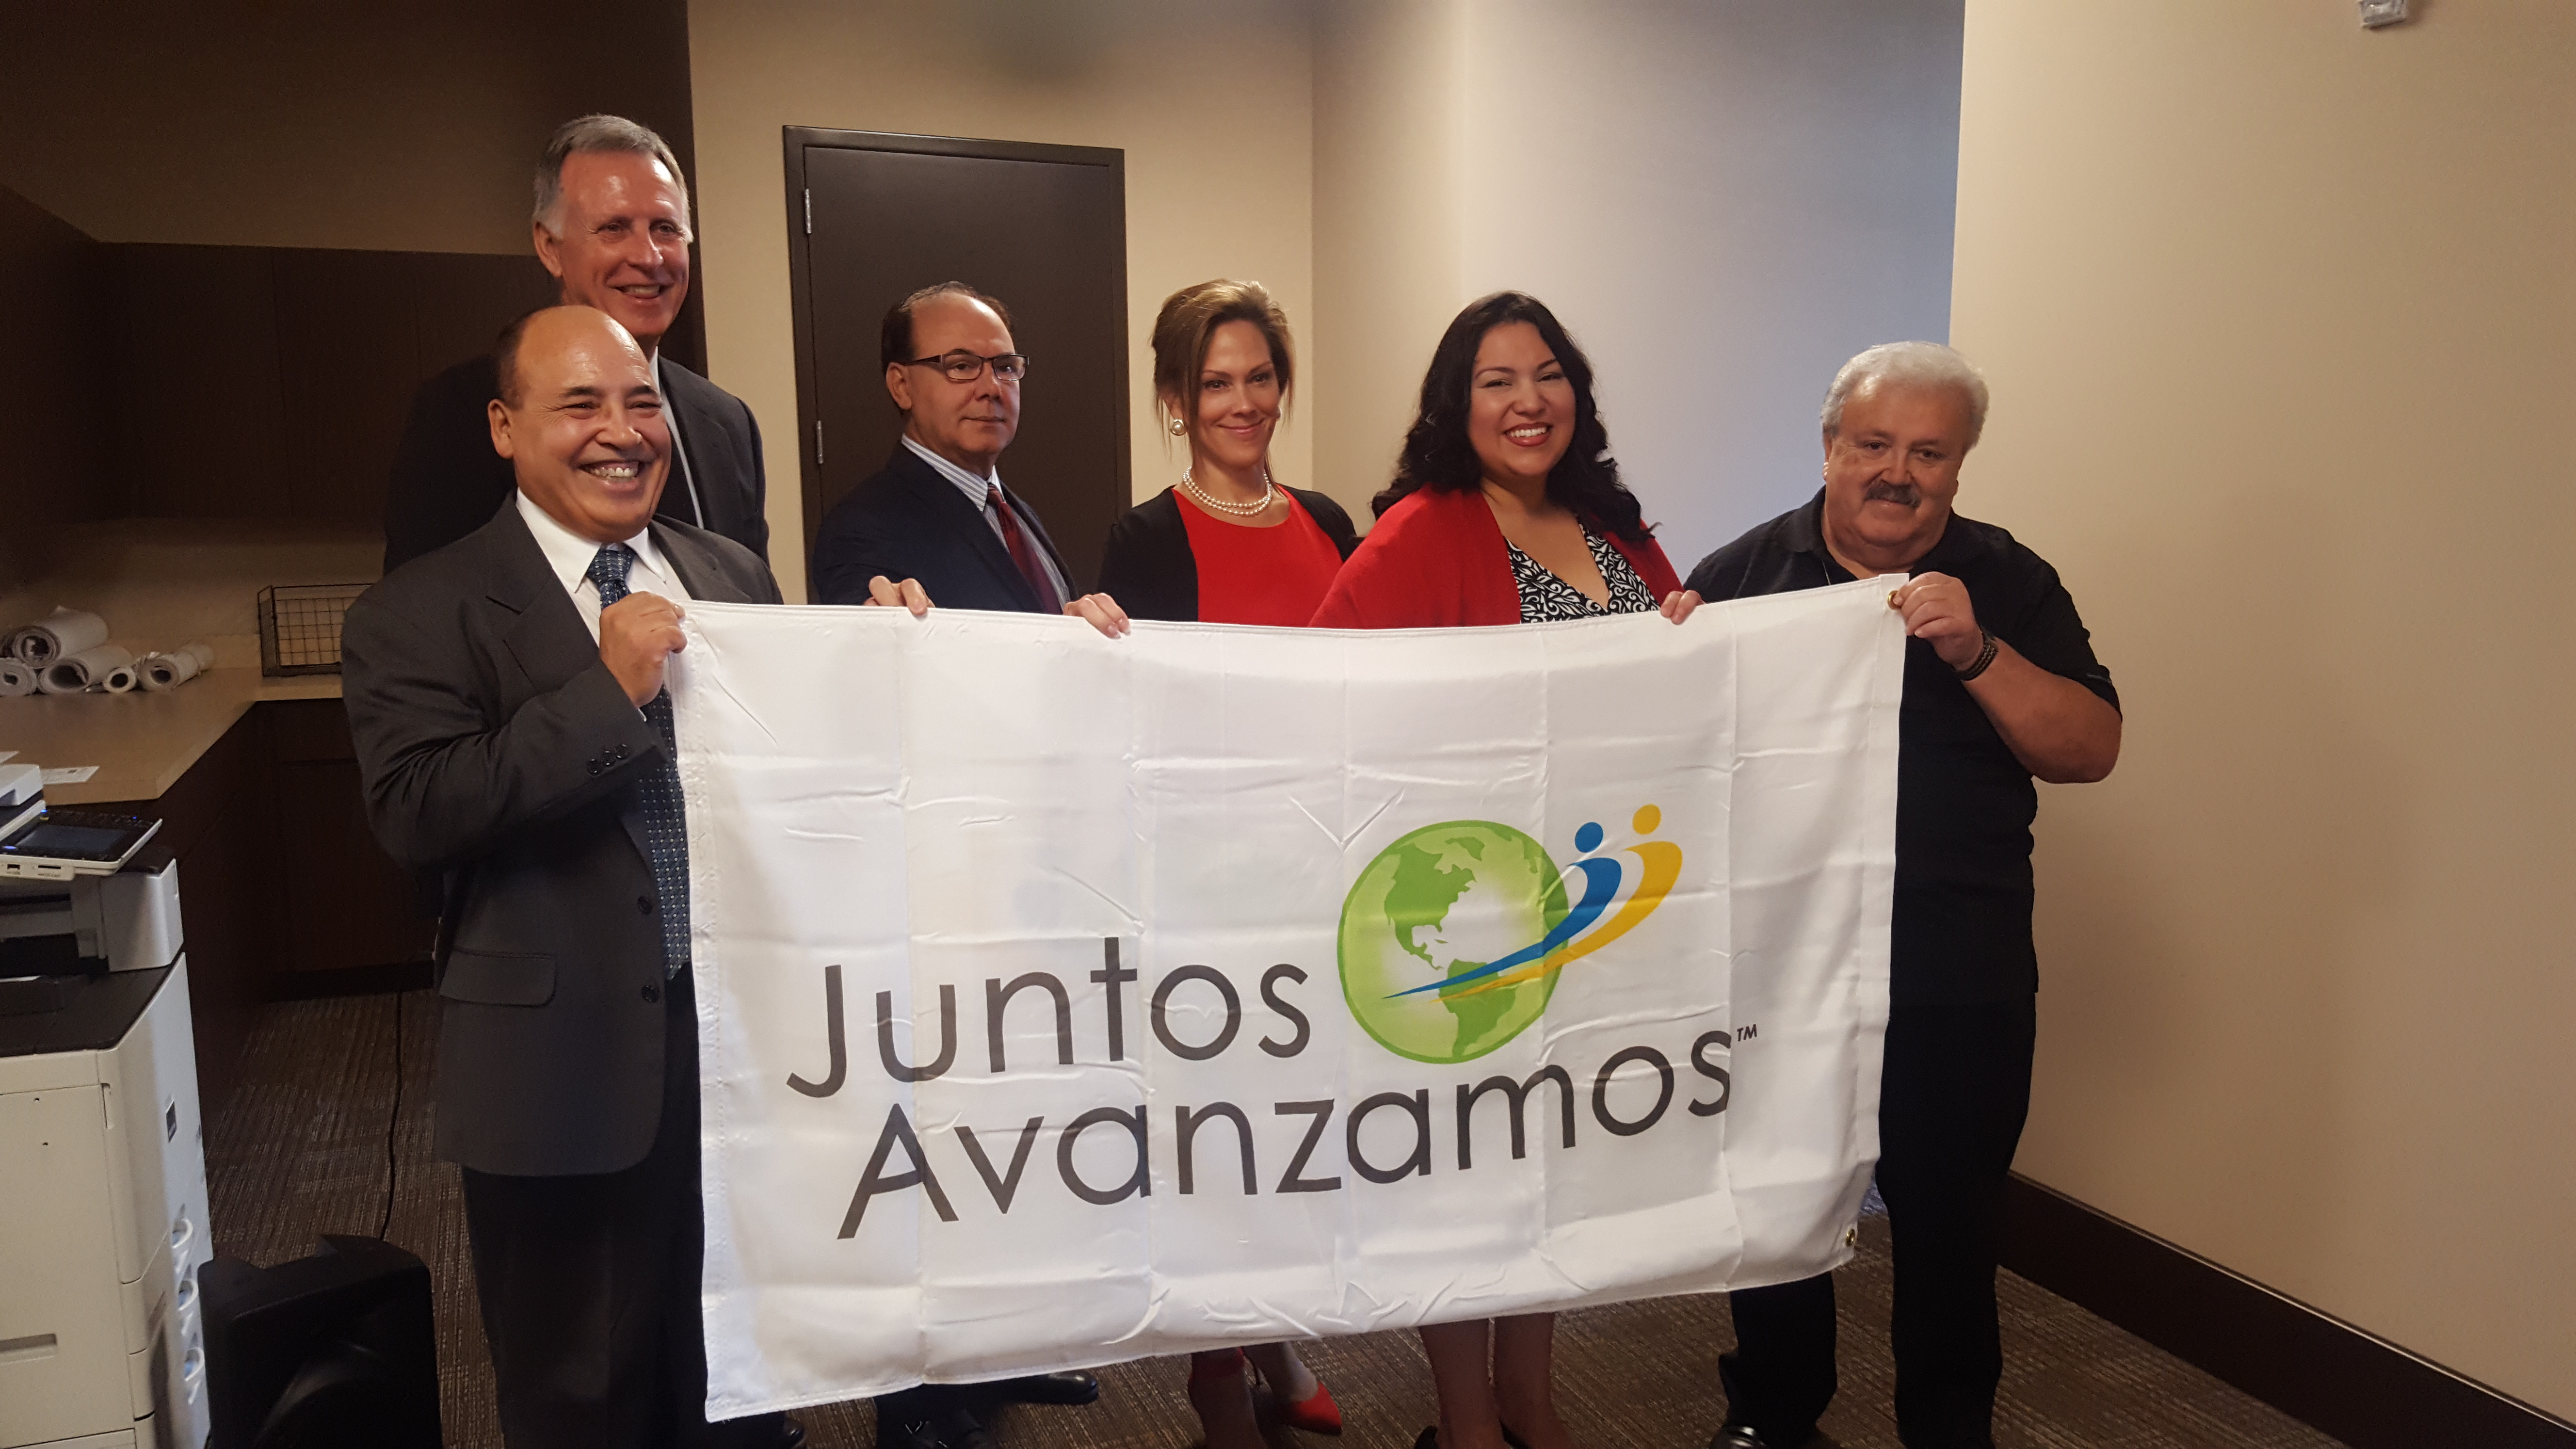 Mwcua partner colorado credit union celebrates juntos avanzamos pictured from left to right pablo defilippi vice president of membership and business development publicscrutiny Gallery